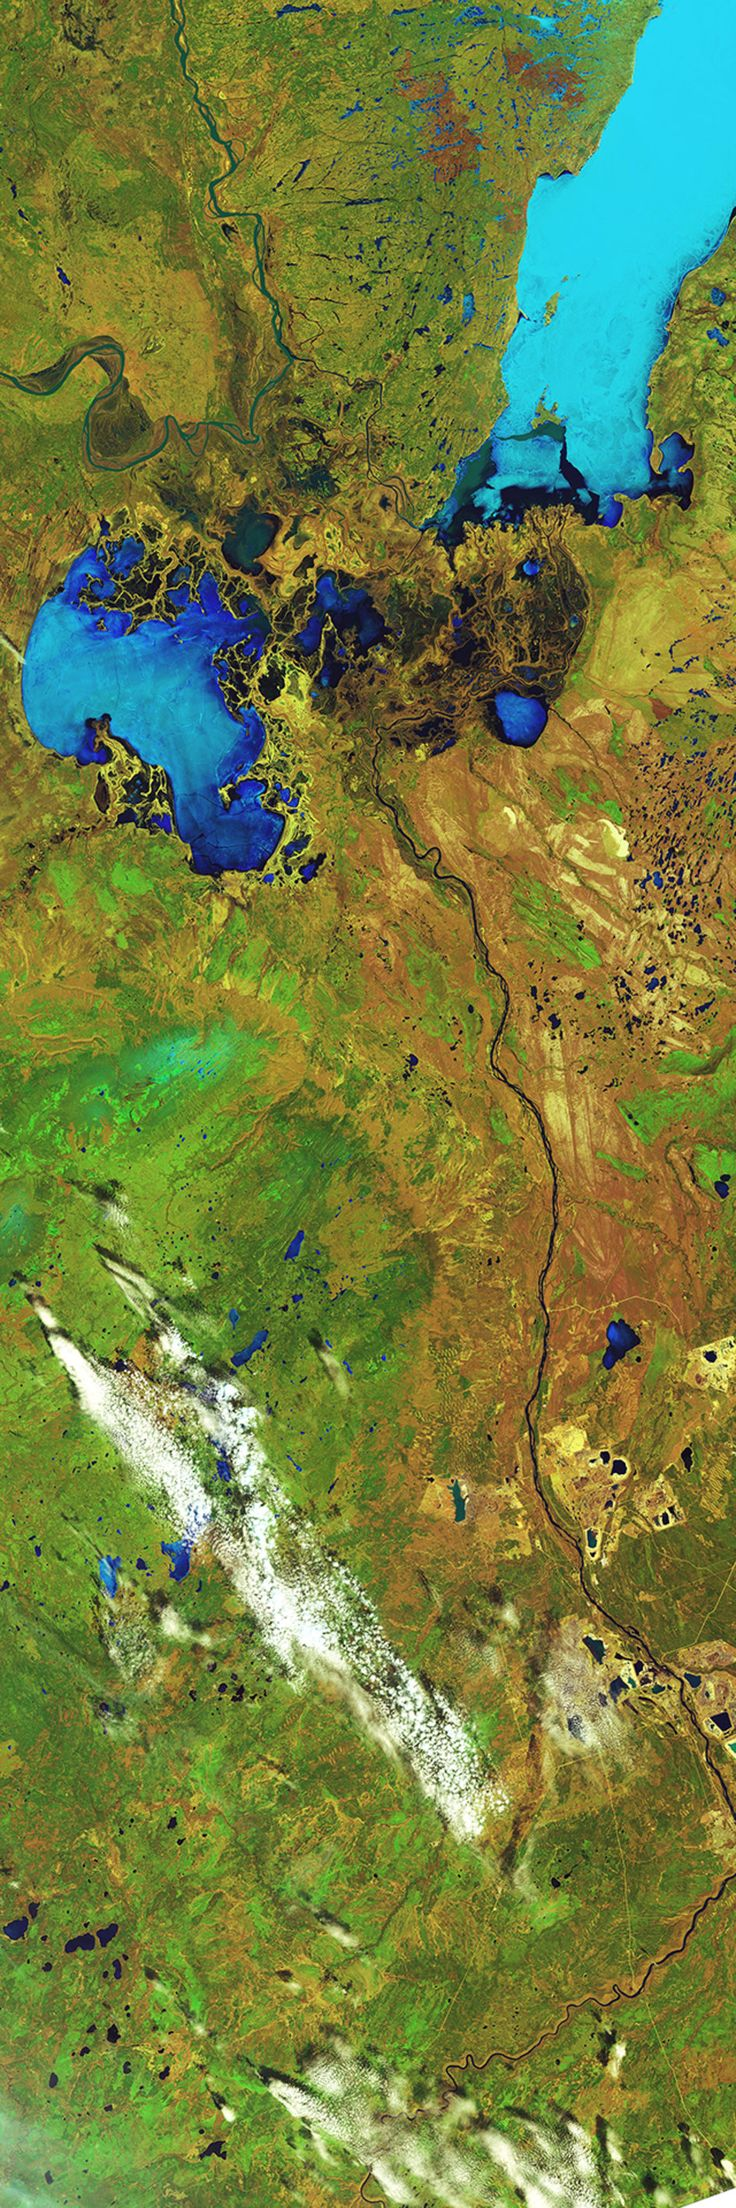 This Landsat-8 image covers a distance of over 350 km from top to bottom, all within Canada's Alberta province.